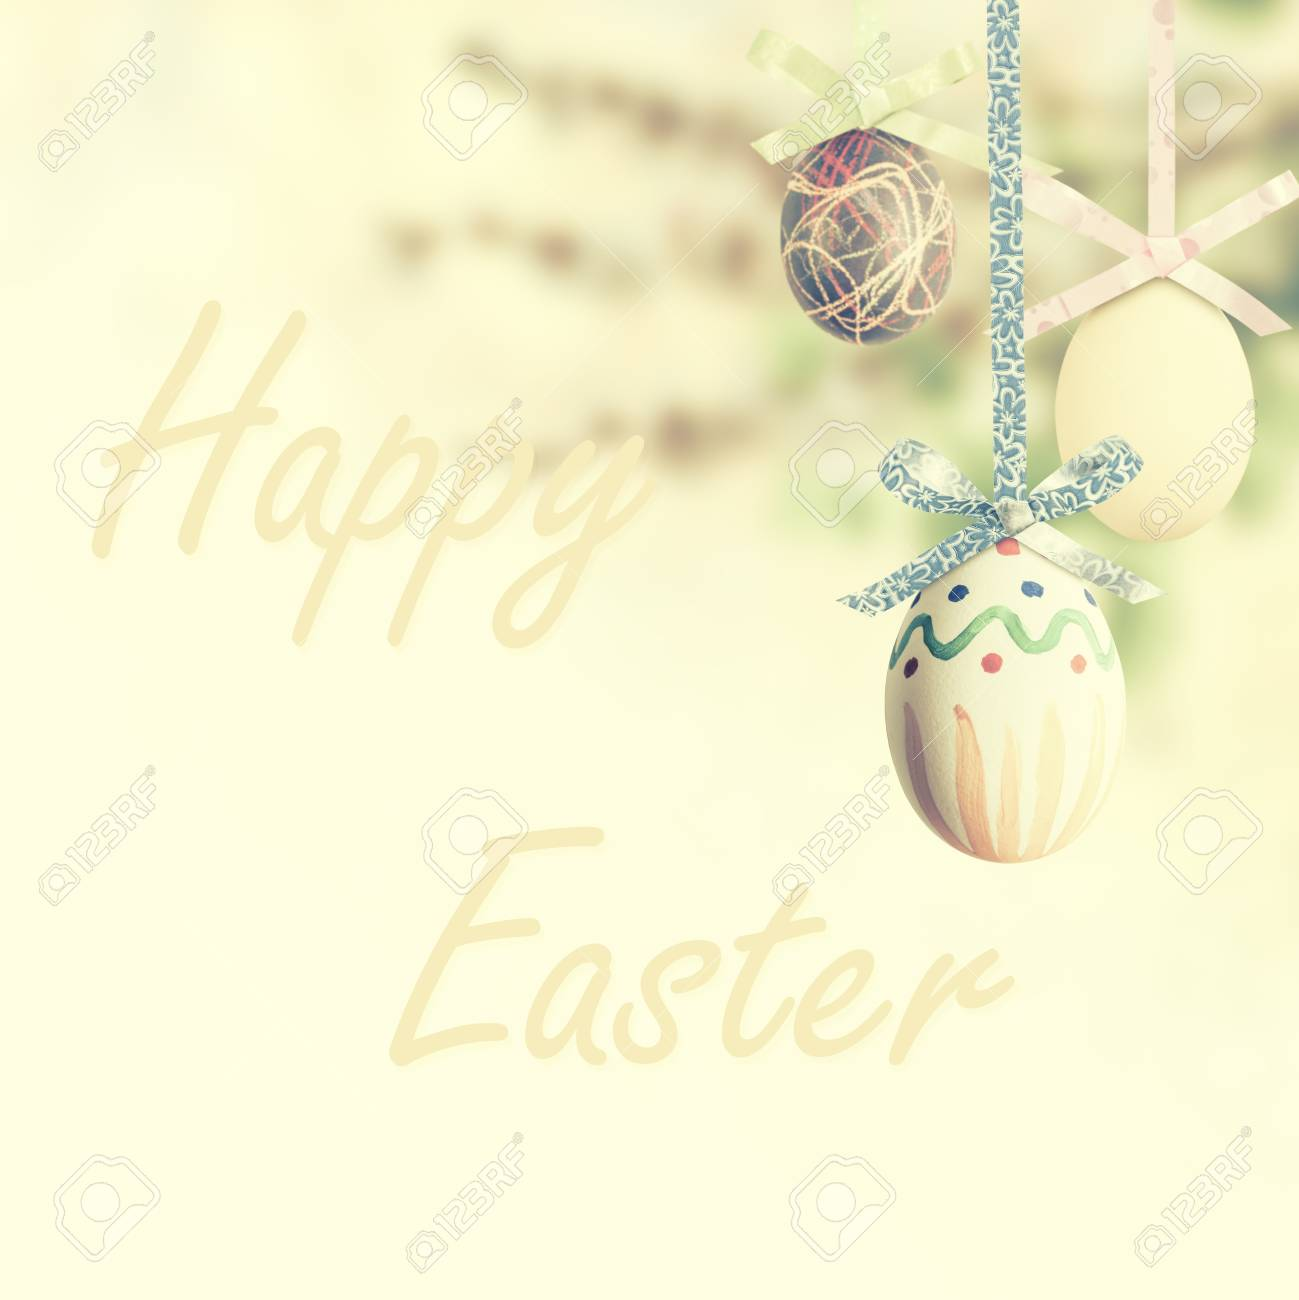 Happy Easter holiday vintage background with eggs